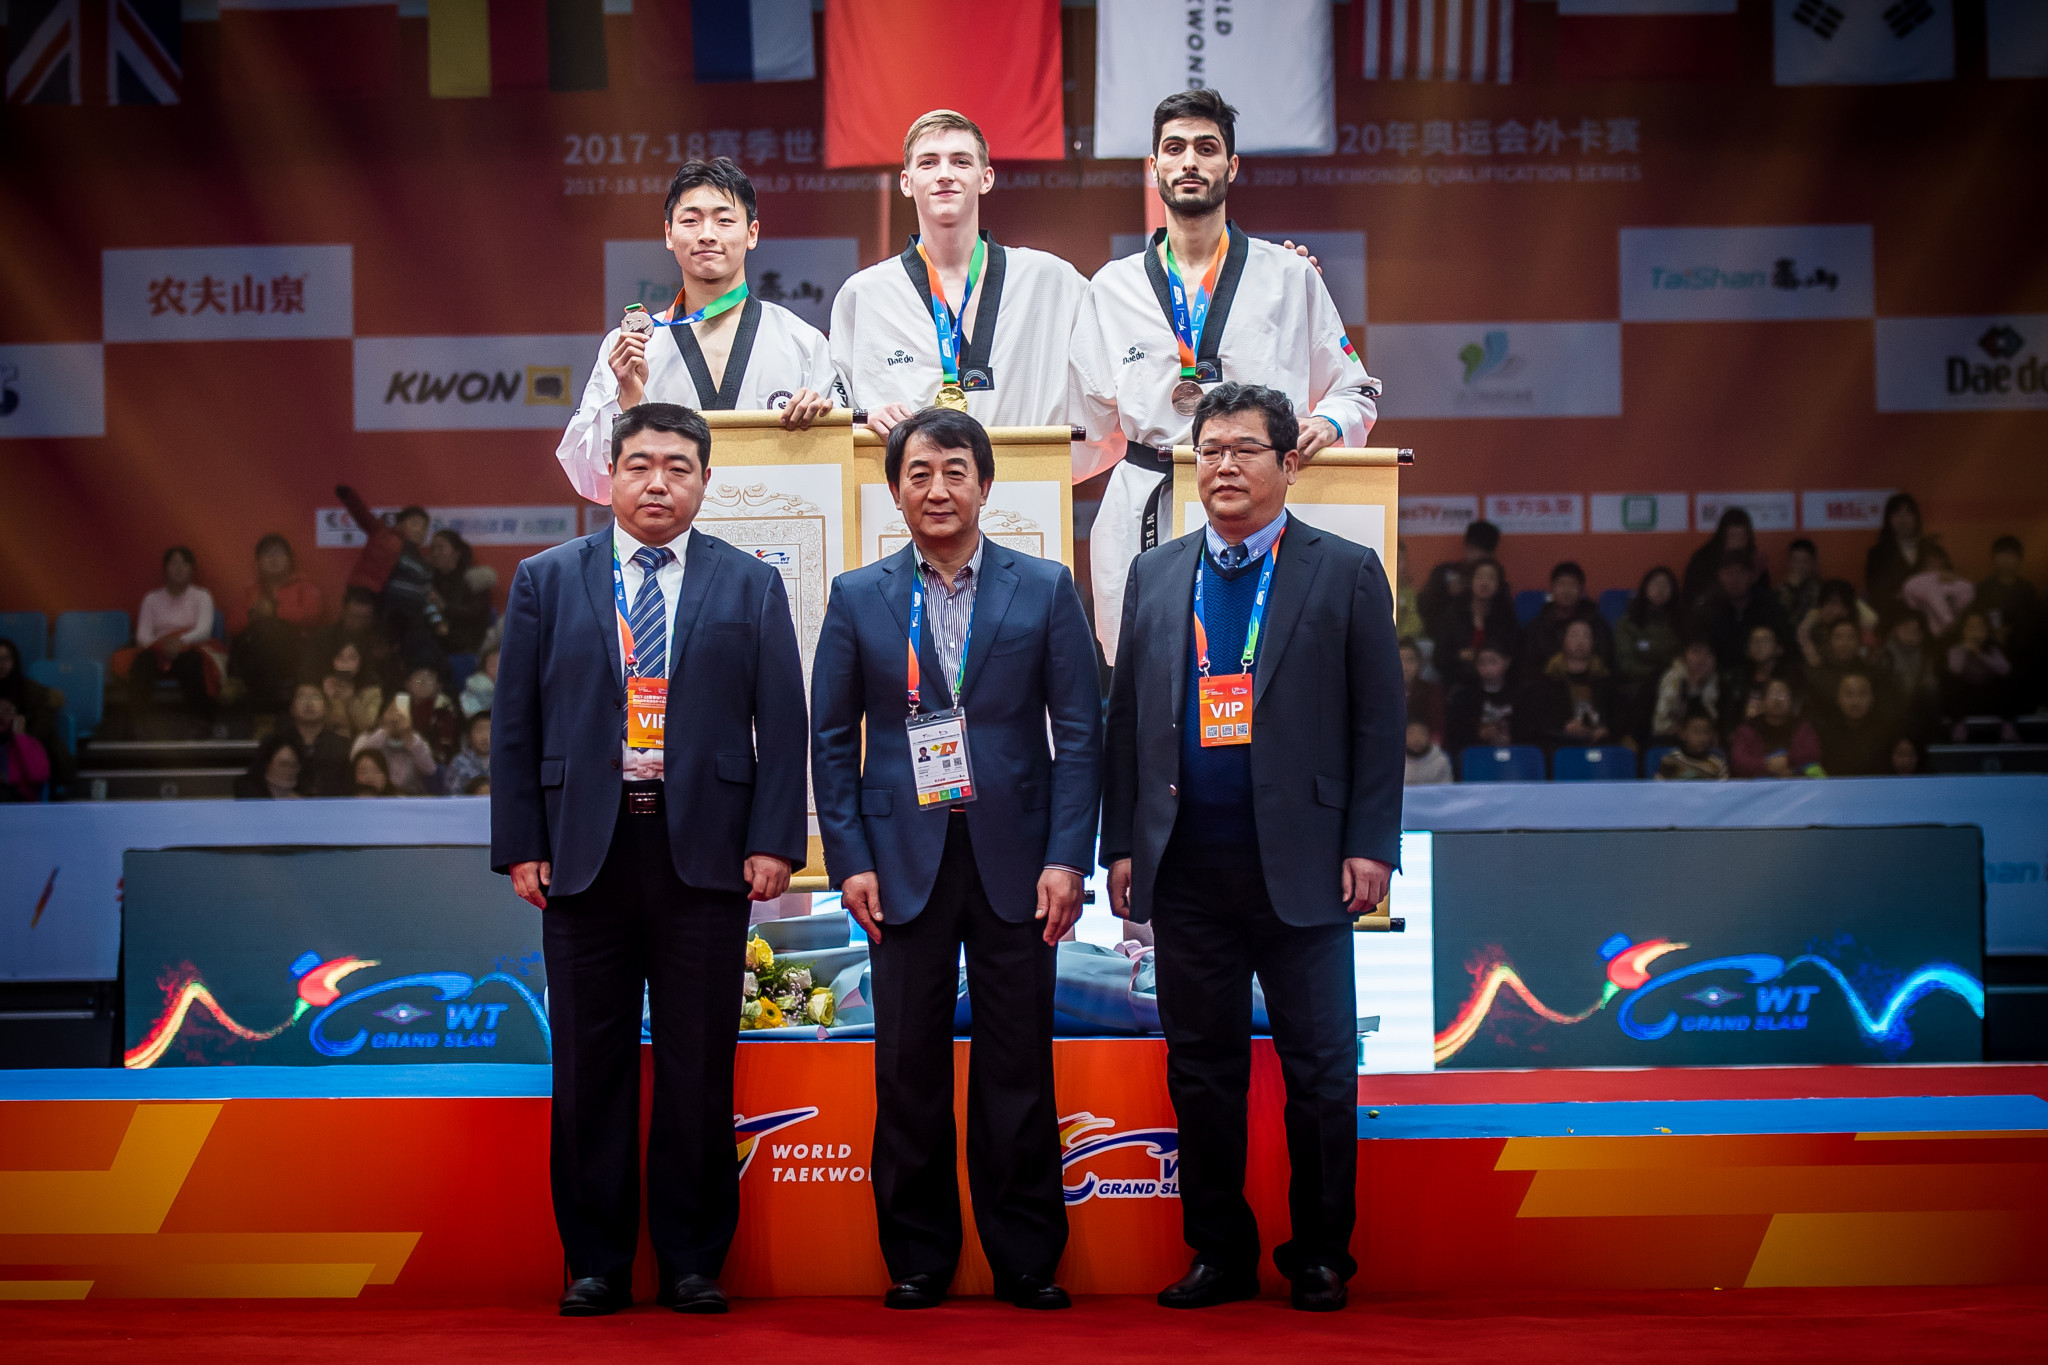 Azerbaijan's reigning world champion Milad Beigi Harchegani, back right, completed the top three ©World Taekwondo